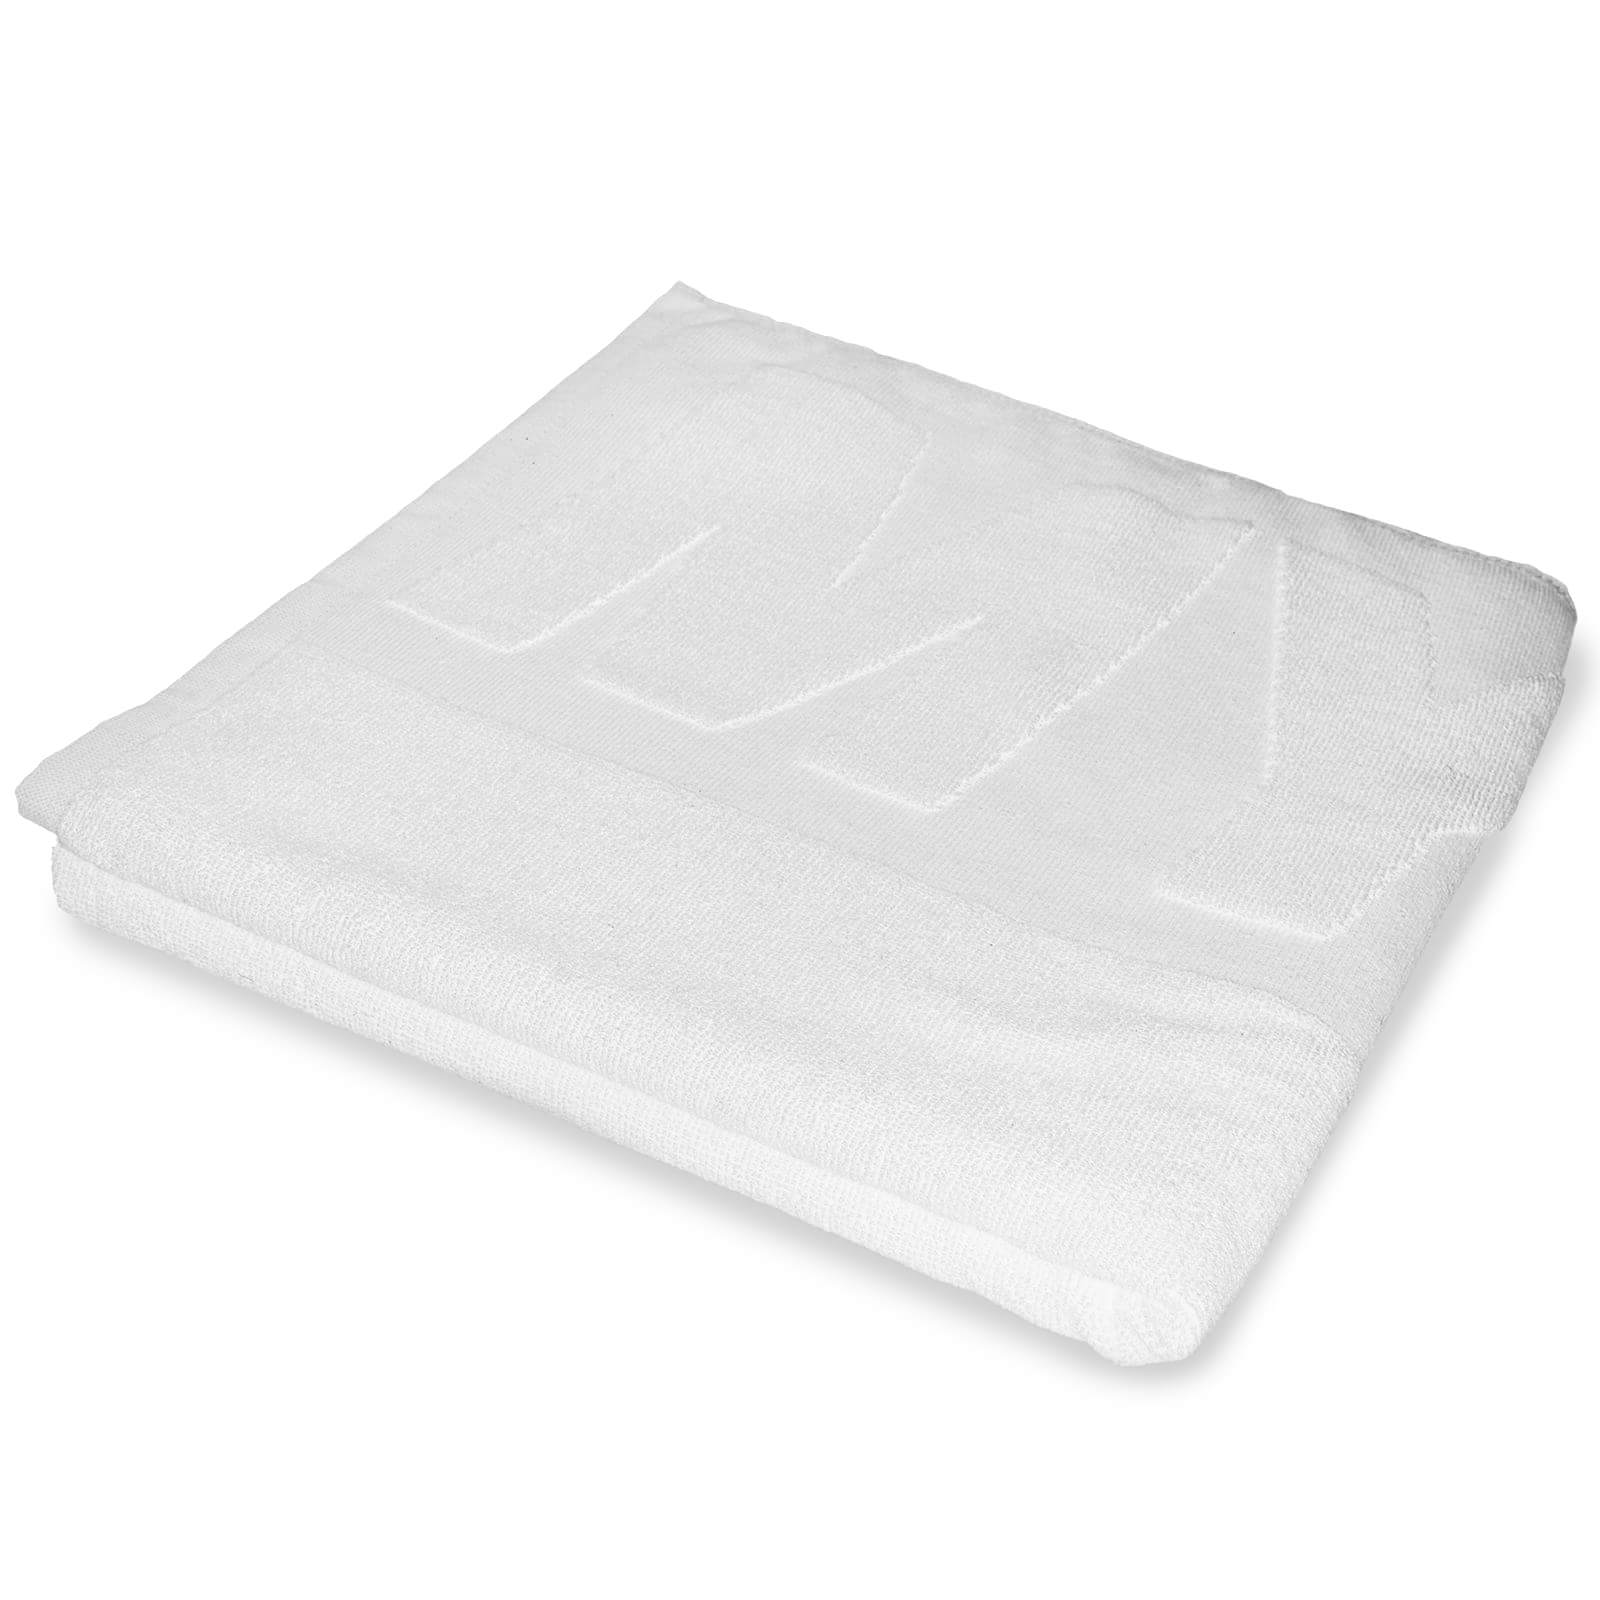 Large Towel – White